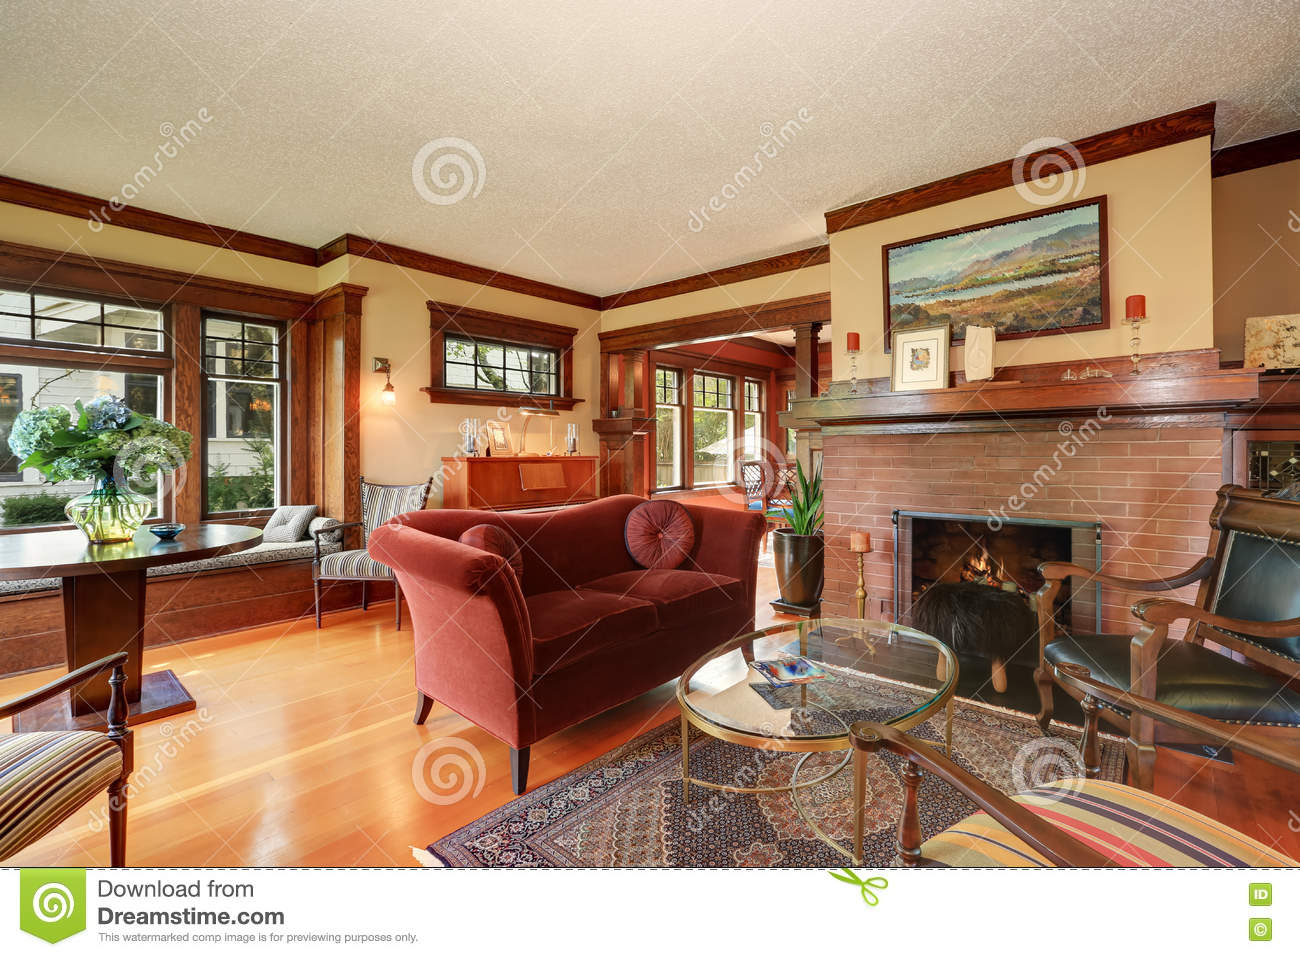 American classic living room interior design stock image for Furniture northwest